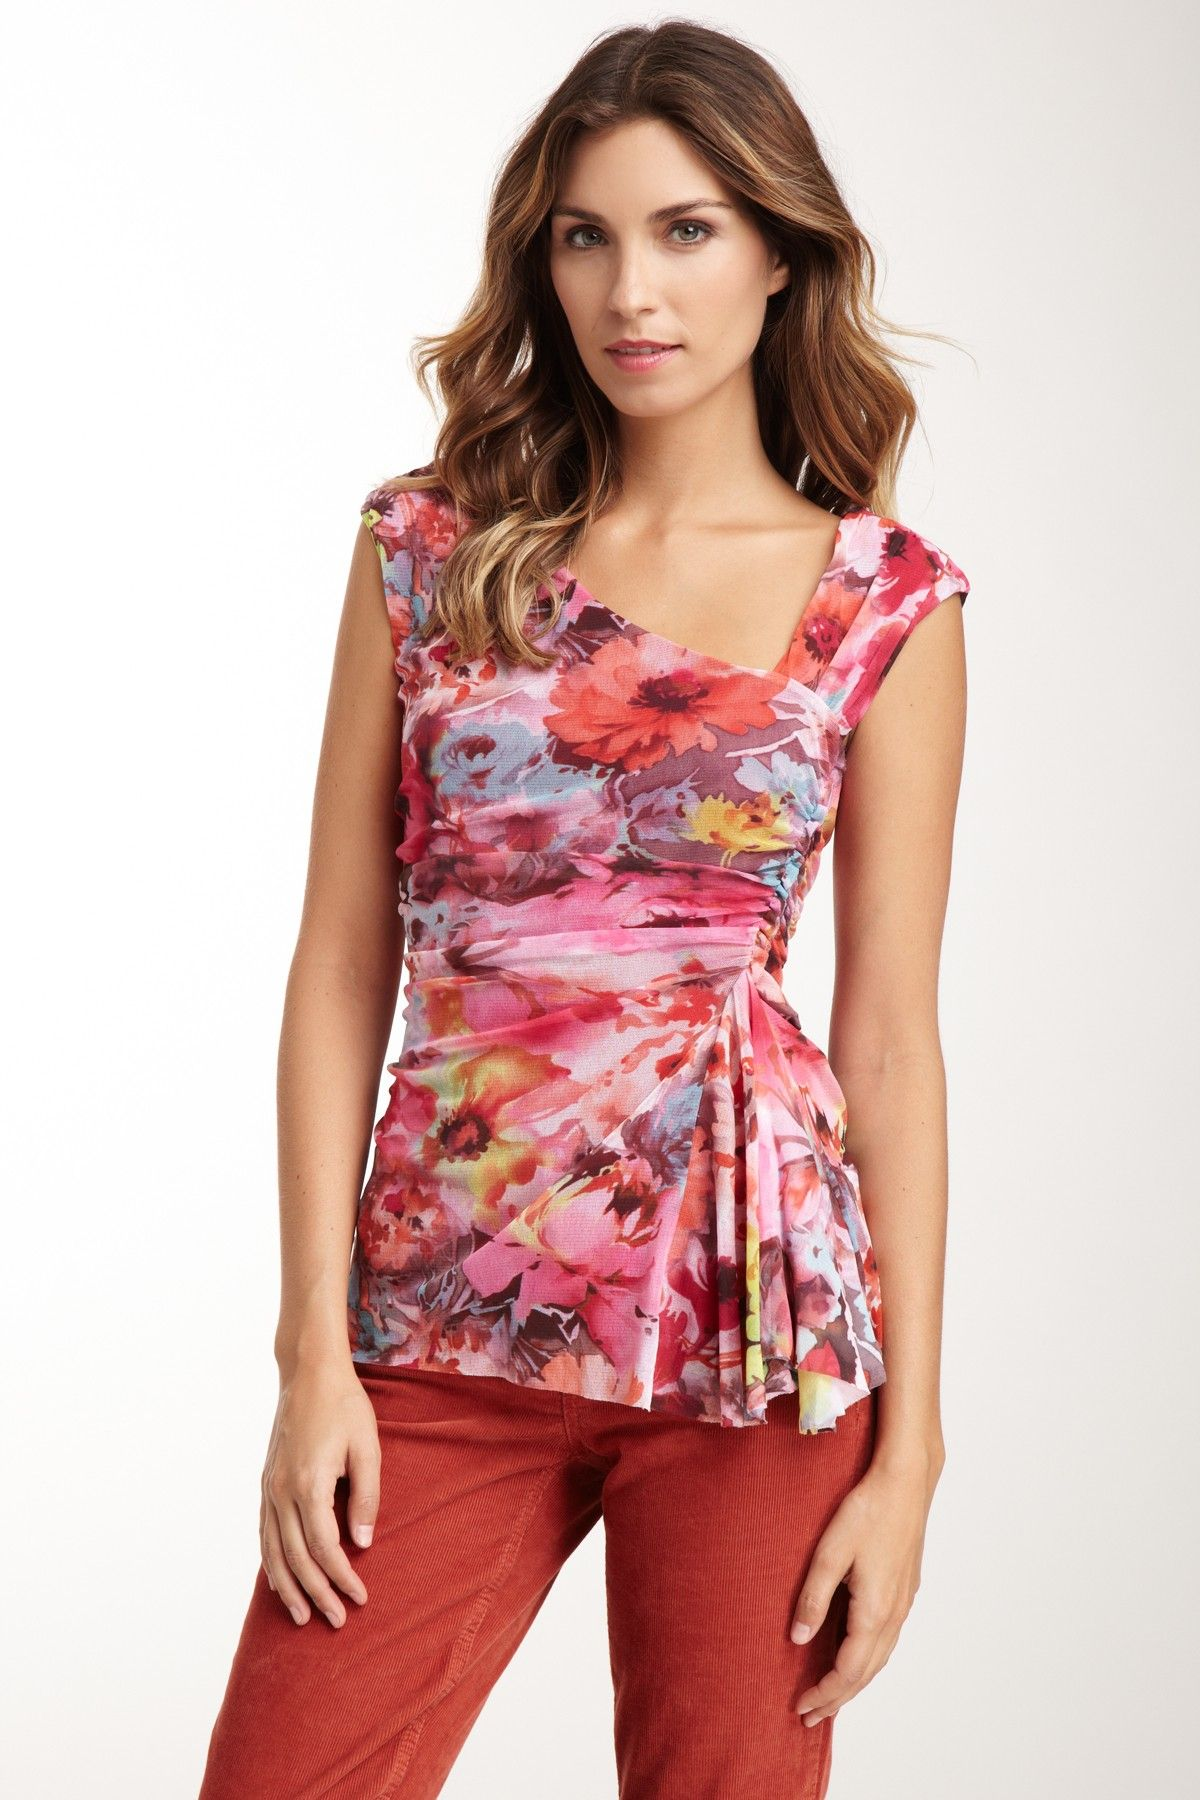 Weston Wear  Side Mattie Ruched Top